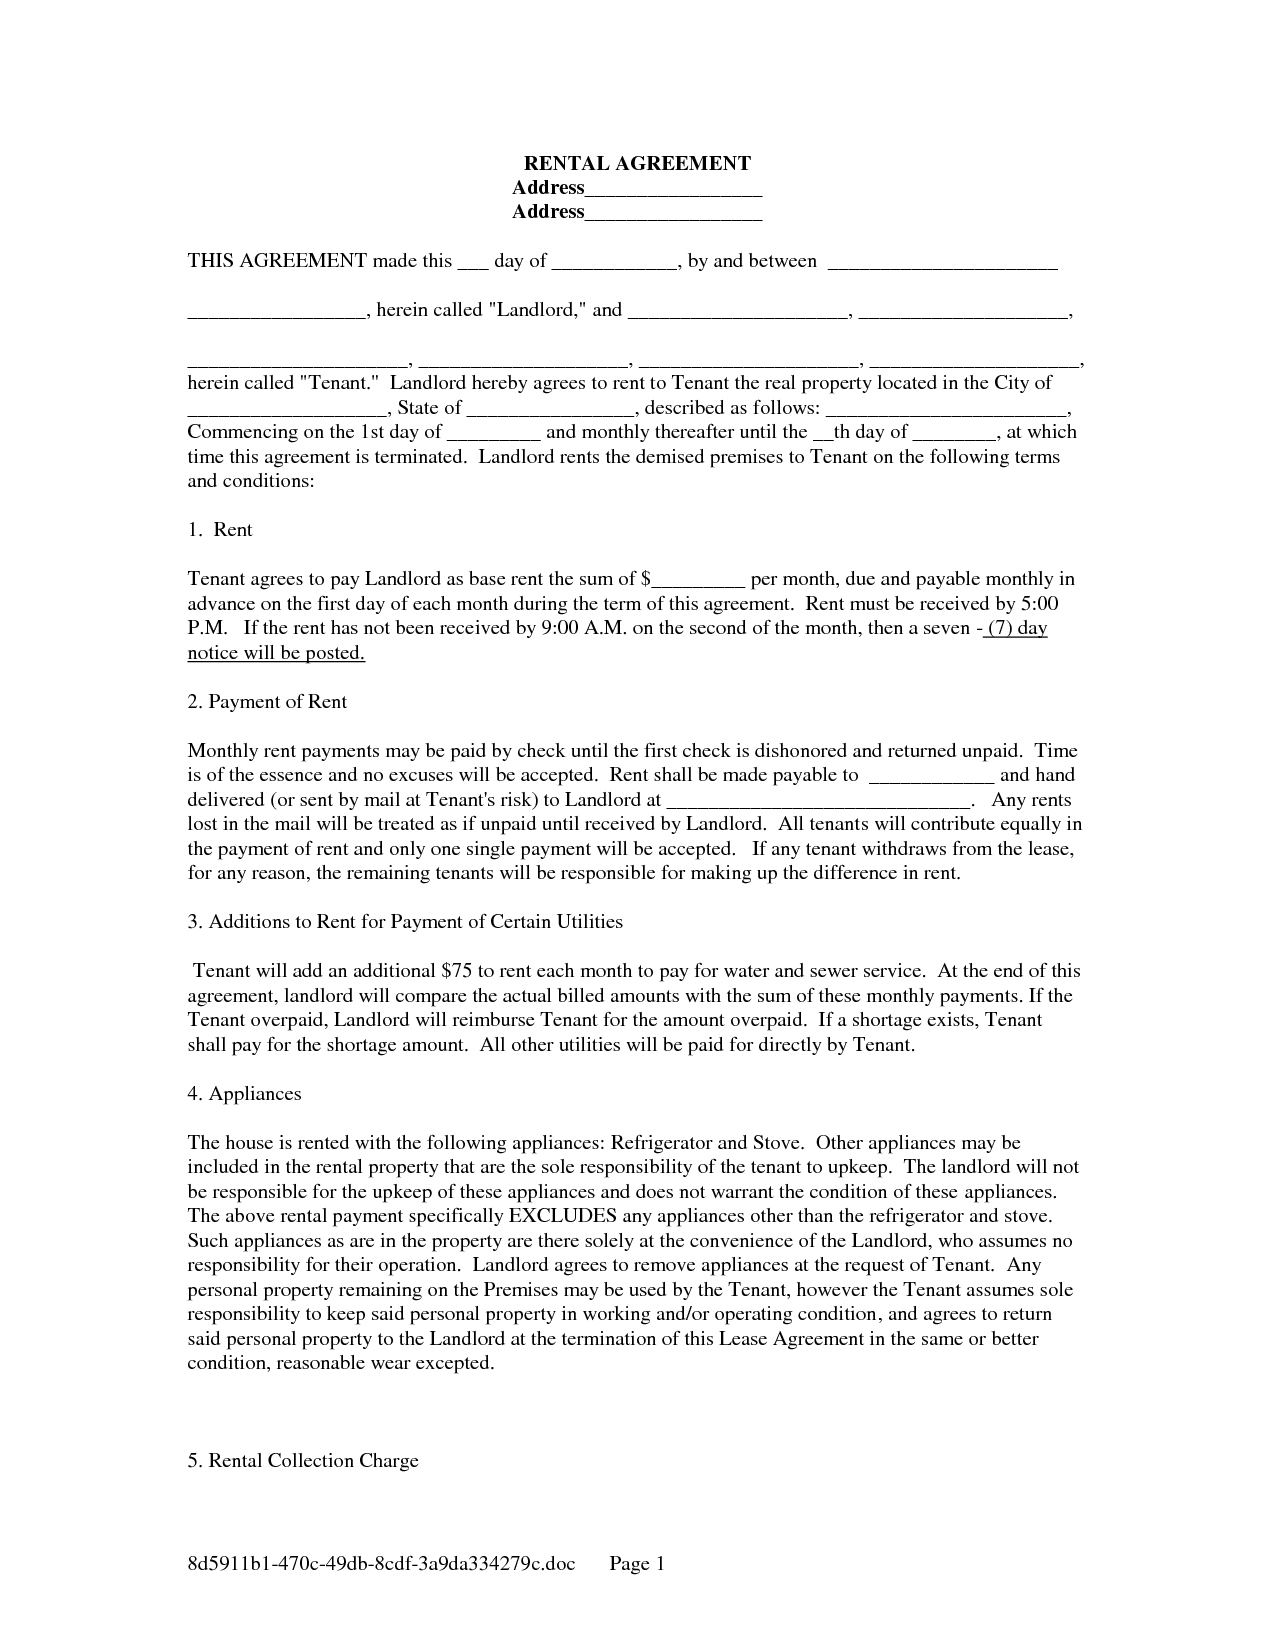 Printable Rental Lease Agreement Form For Free | Shop Fresh - Rental Agreement Forms Free Printable